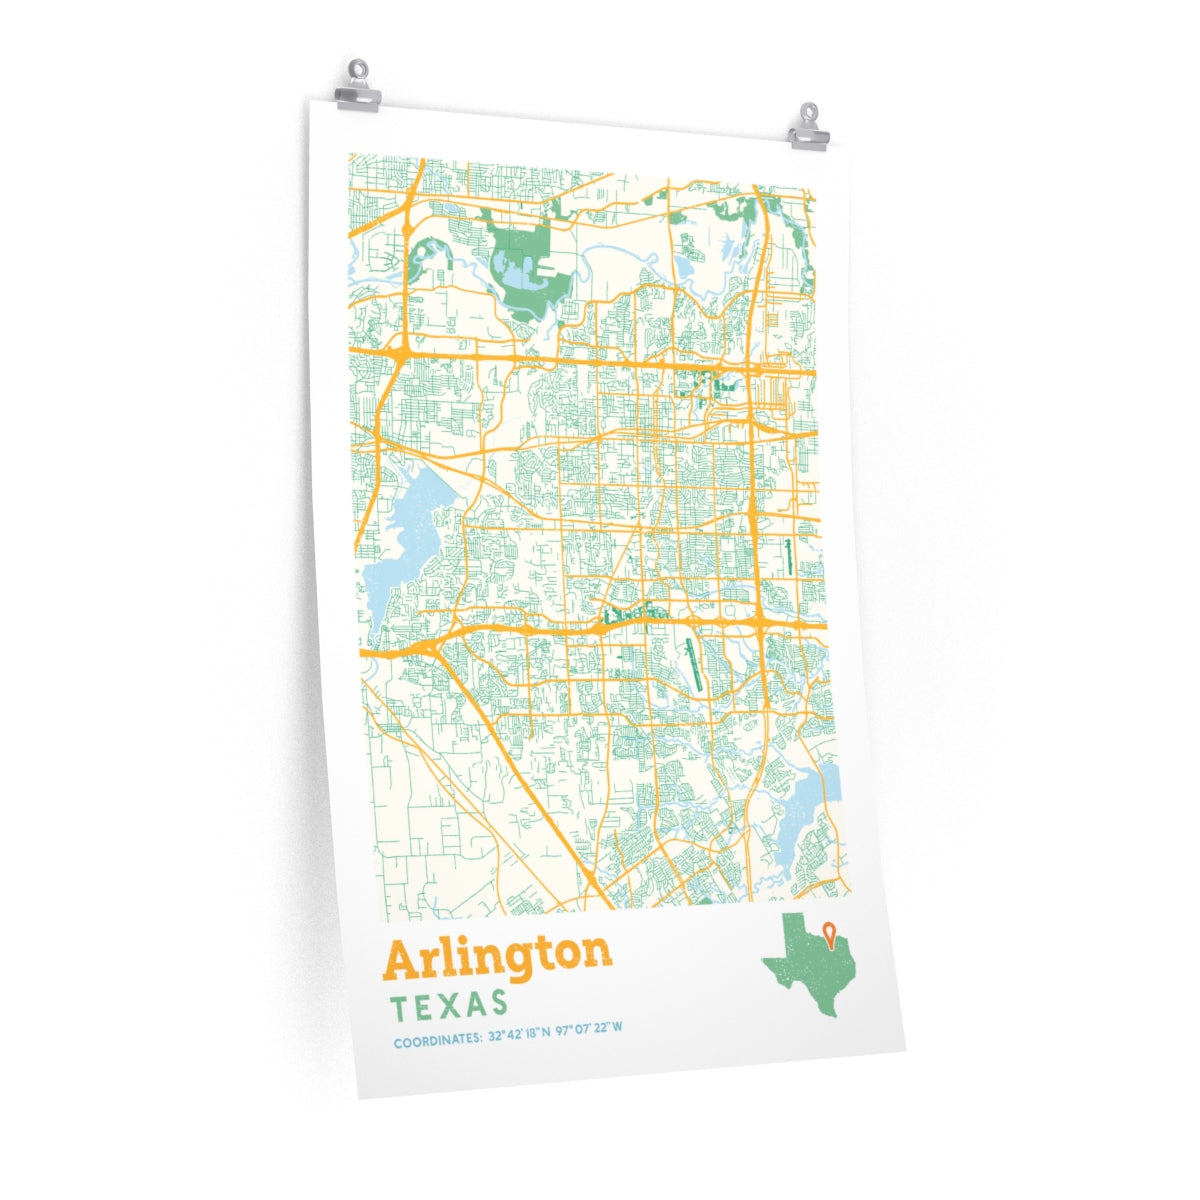 Map Of Arlington Texas.Arlington Texas City Street Map Poster Allegiant Goods Co